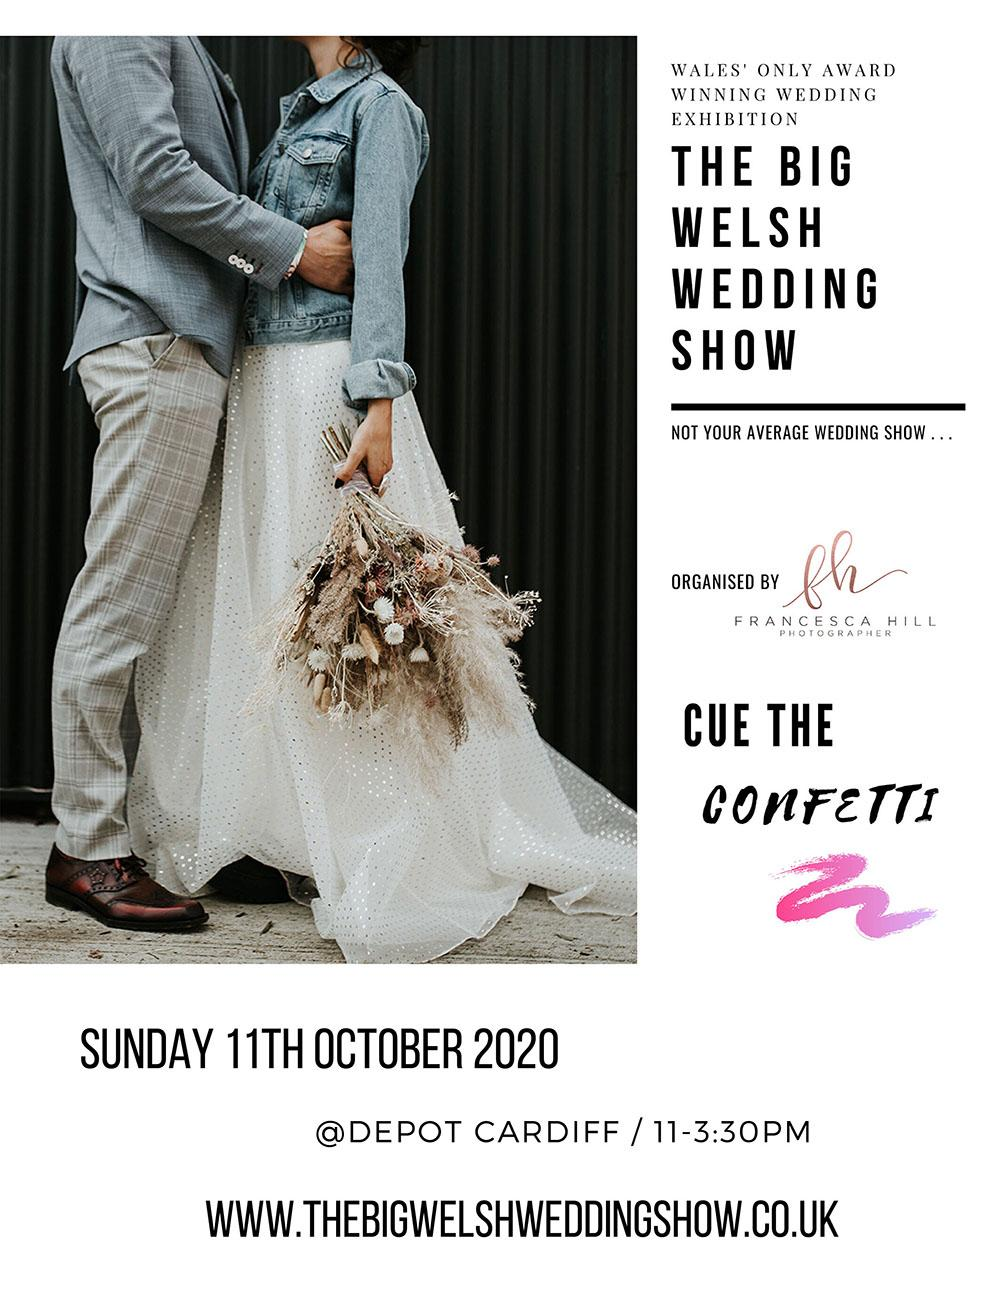 Wedding fair Cardiff on October 11th At Depot